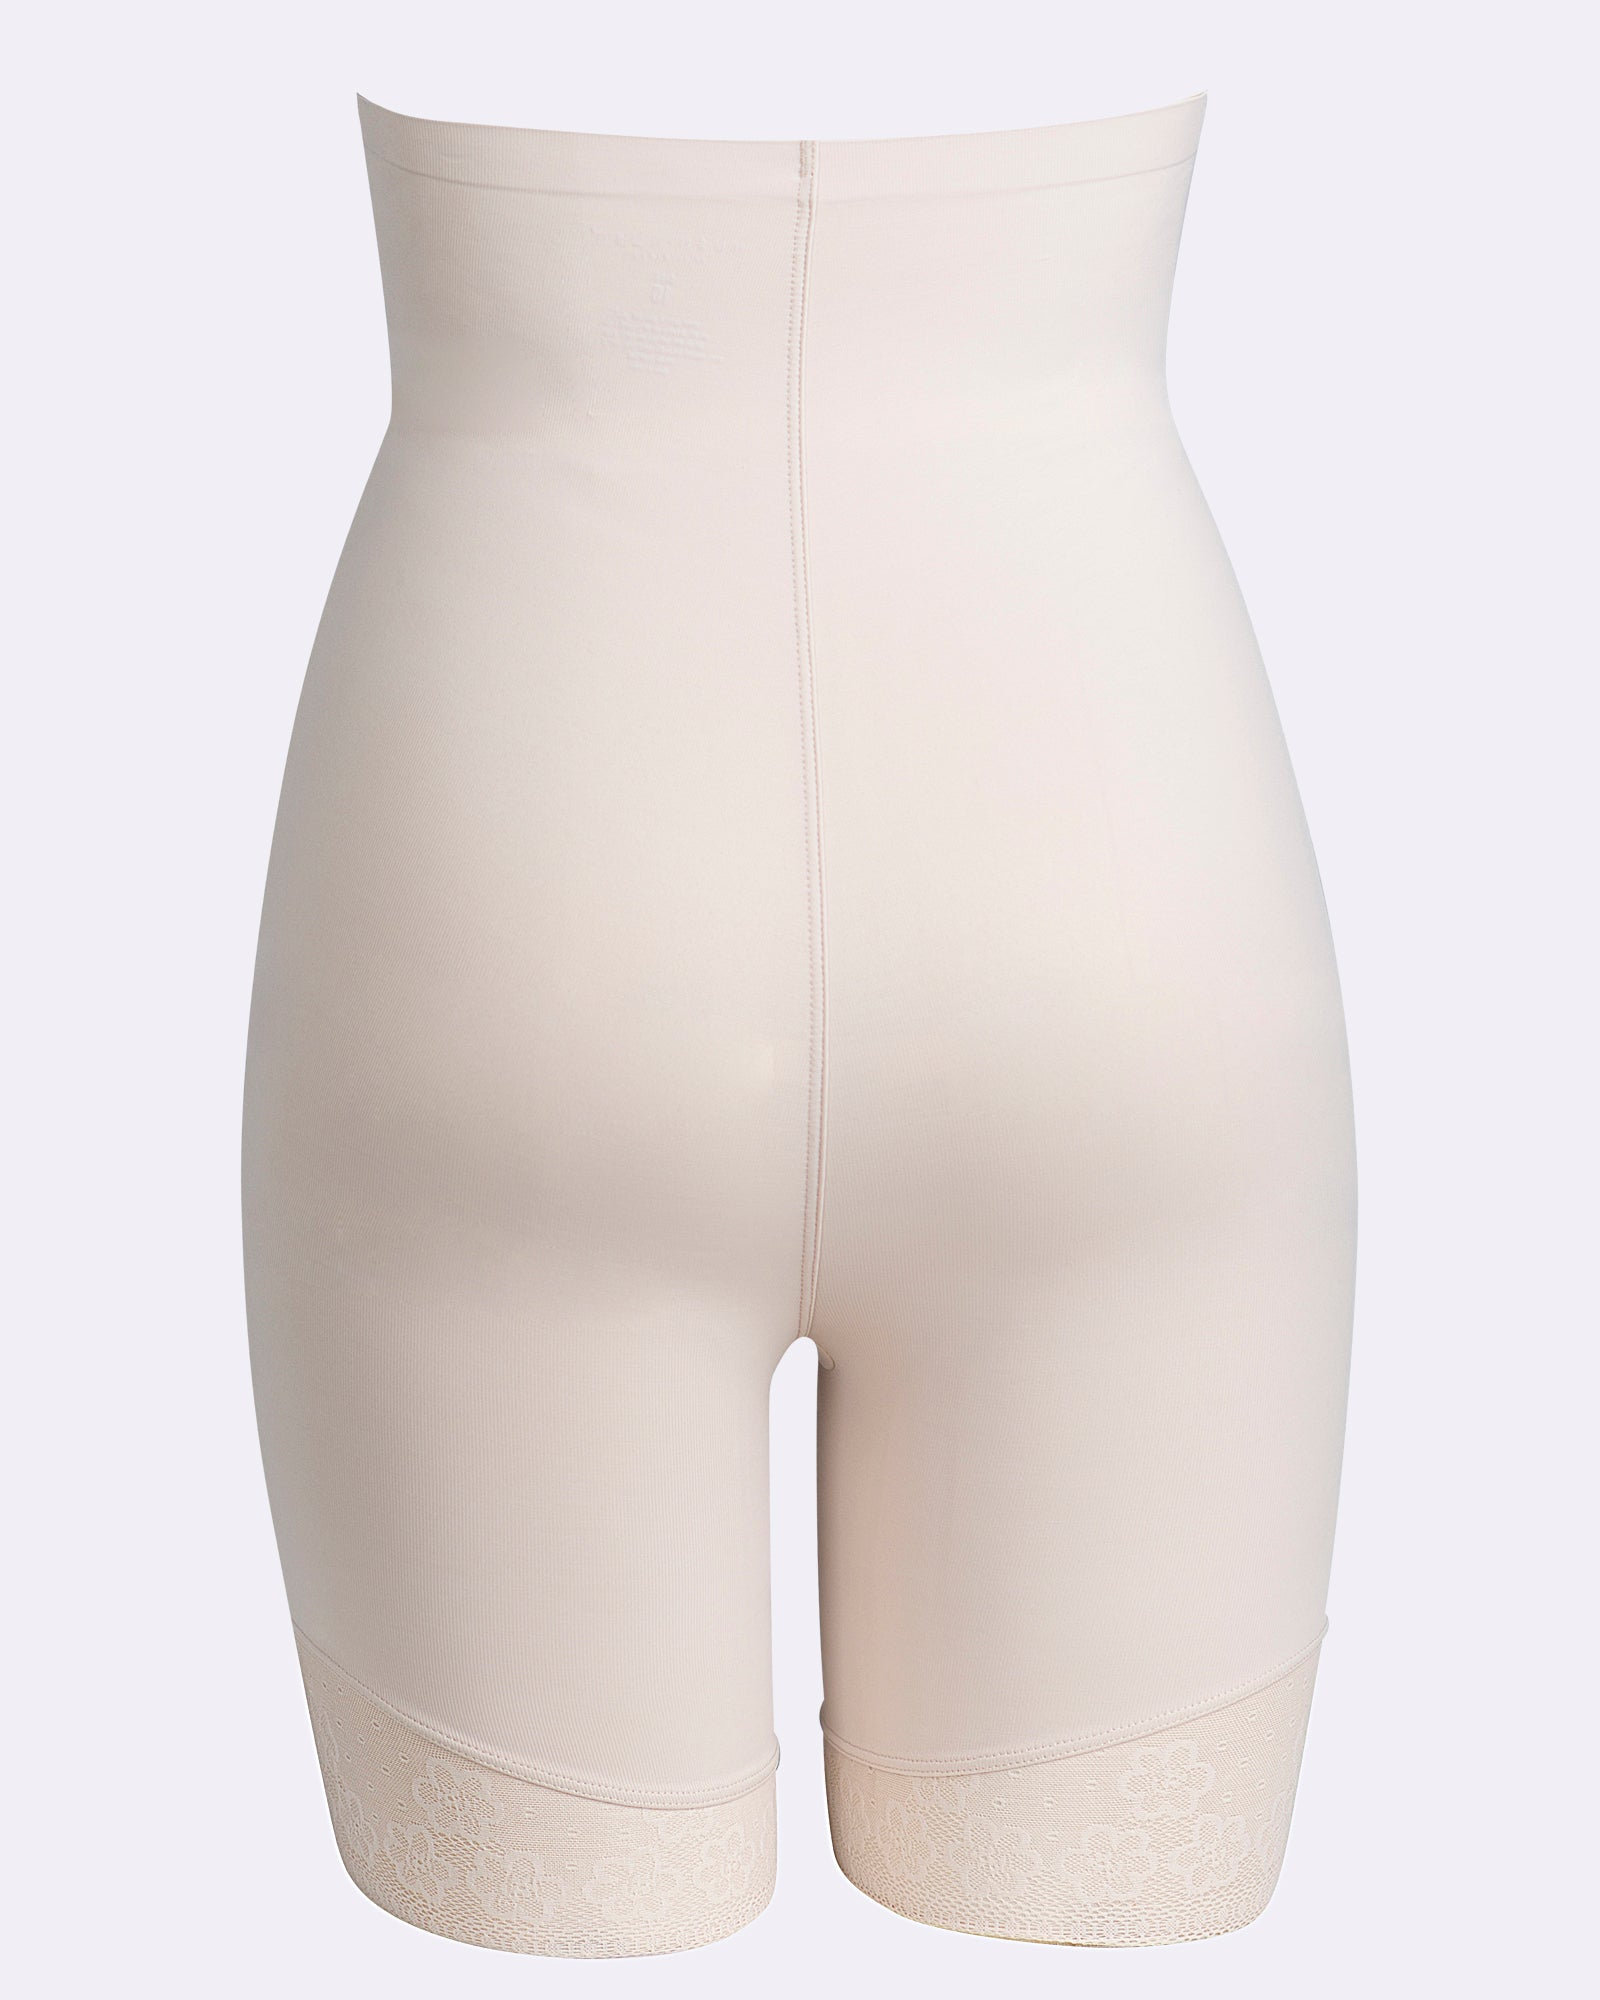 Essensuals Firm Control High Waisted Thigh Shaper - Nude